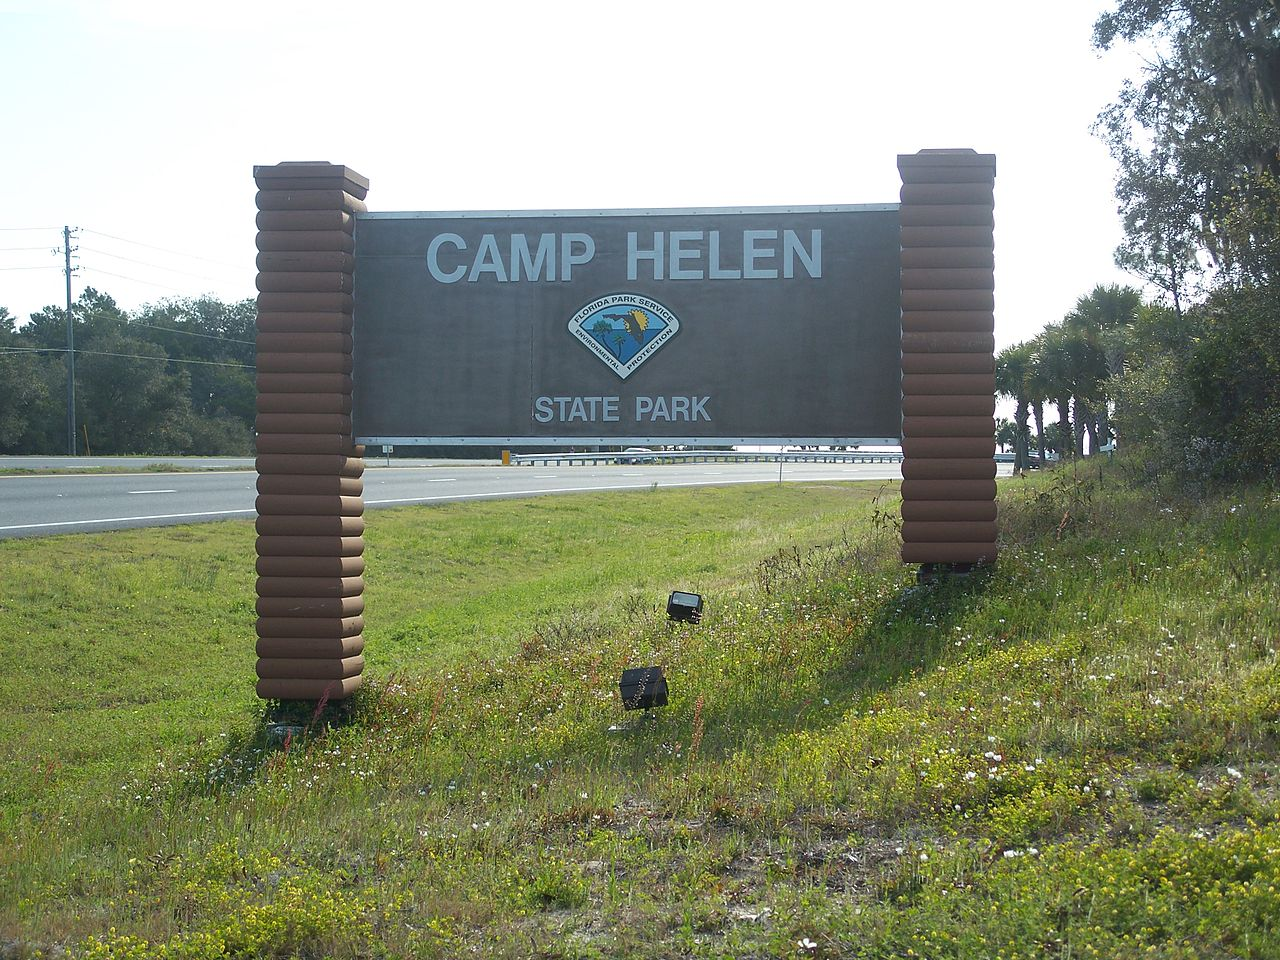 Best Place Of Emerald Coast That Draws The Tourist-Camp Helen State Park